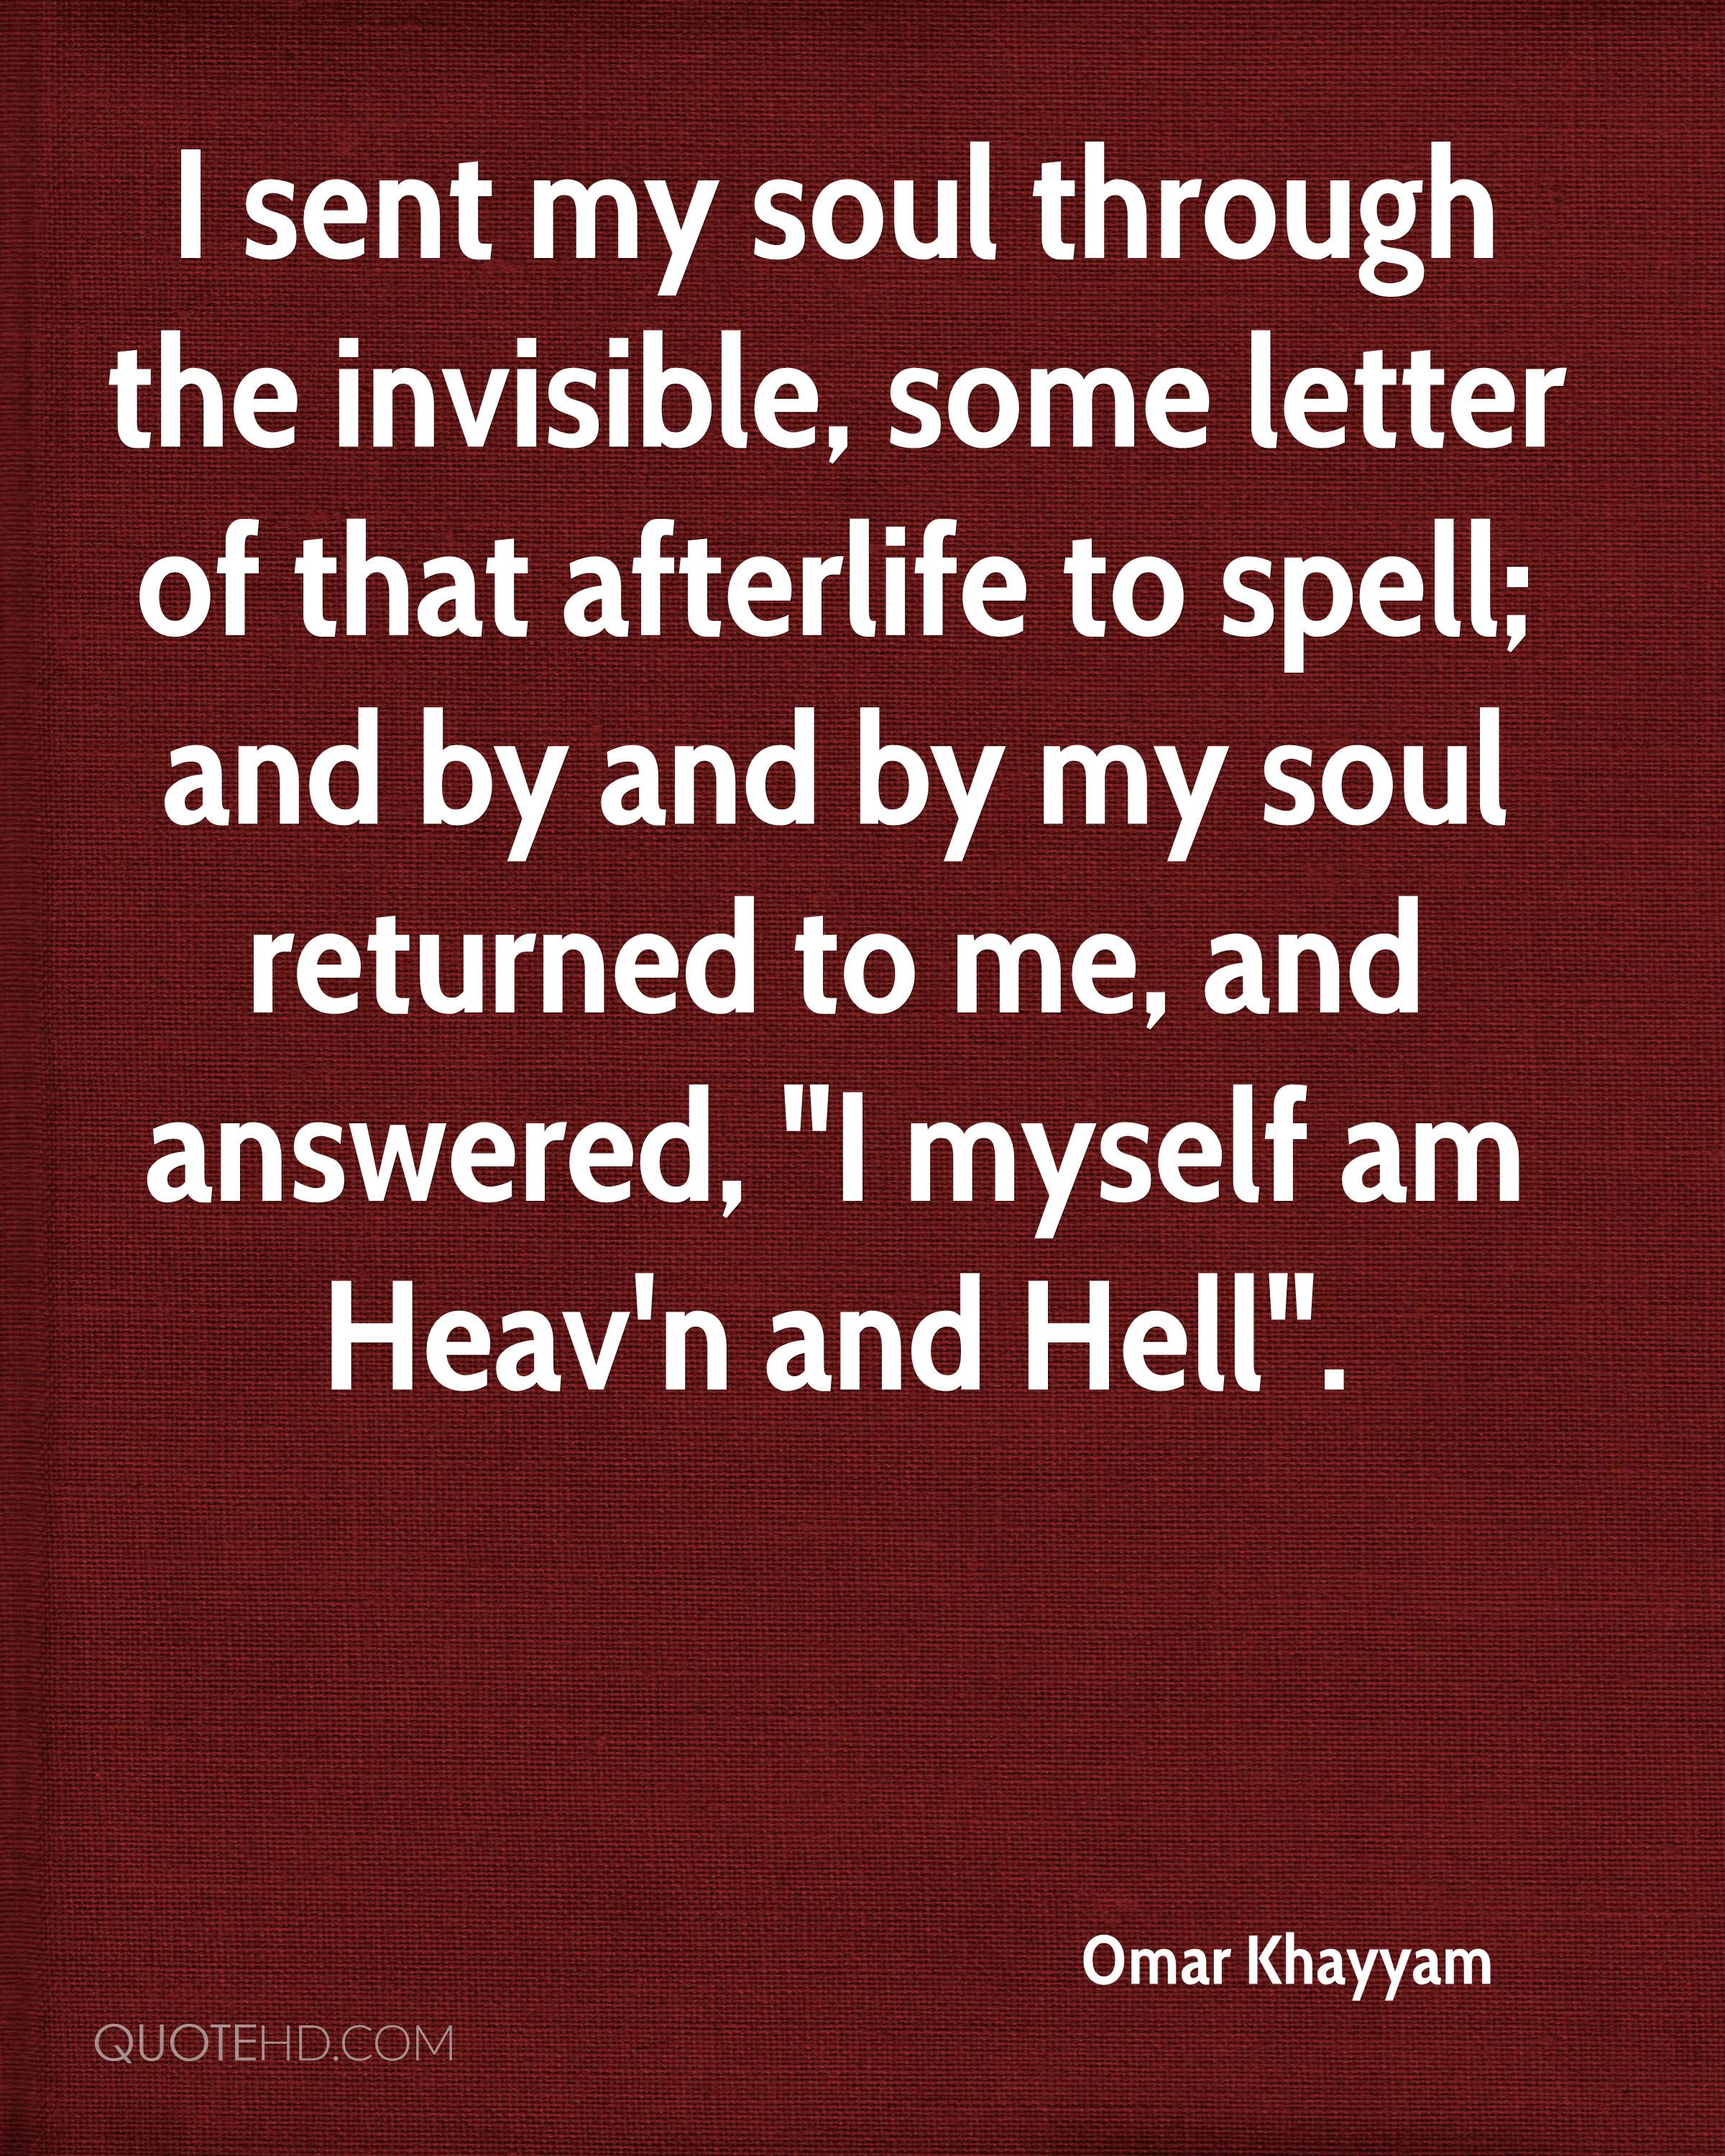 """I sent my soul through the invisible, some letter of that afterlife to spell; and by and by my soul returned to me, and answered, """"I myself am Heav'n and Hell""""."""